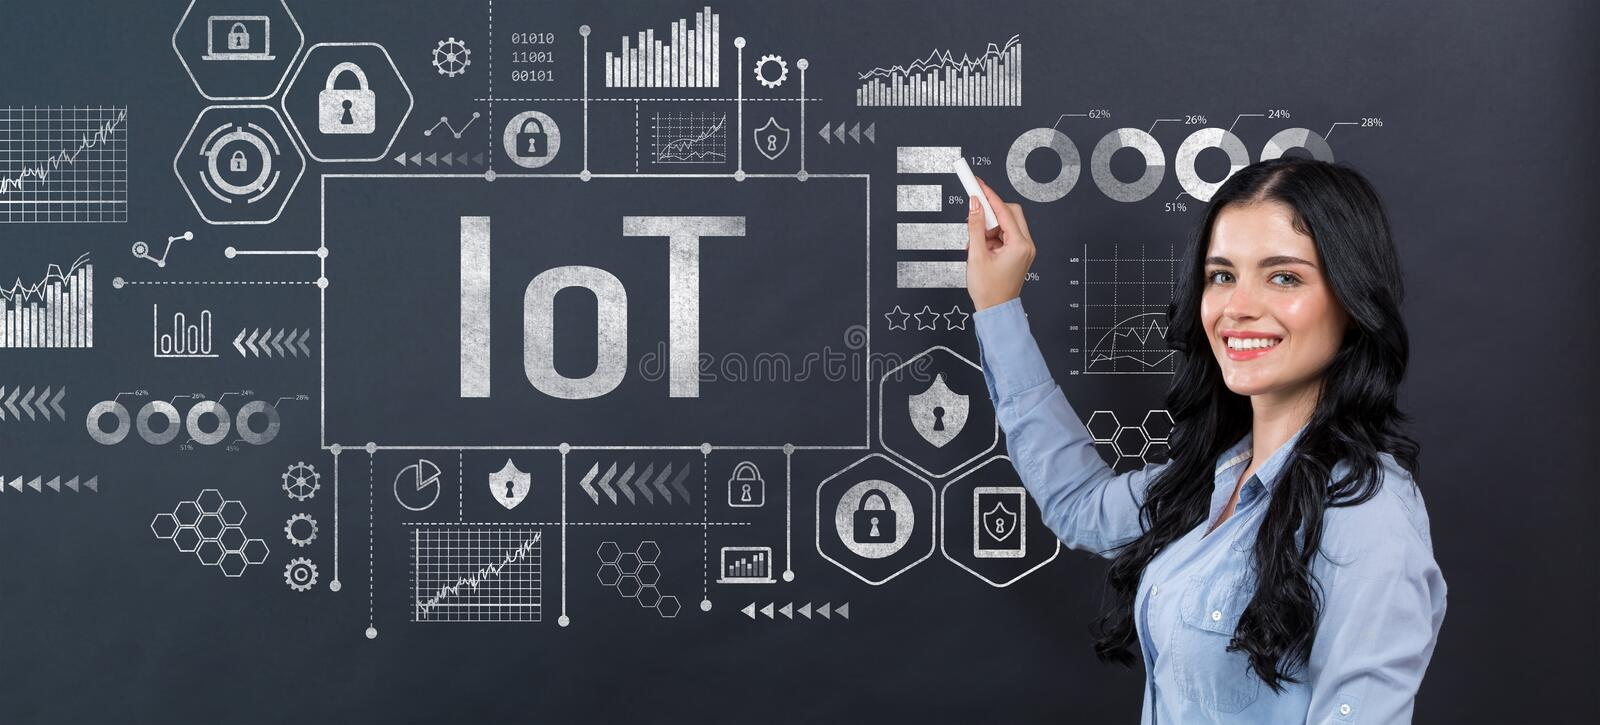 IoT theme with young woman royalty free stock image